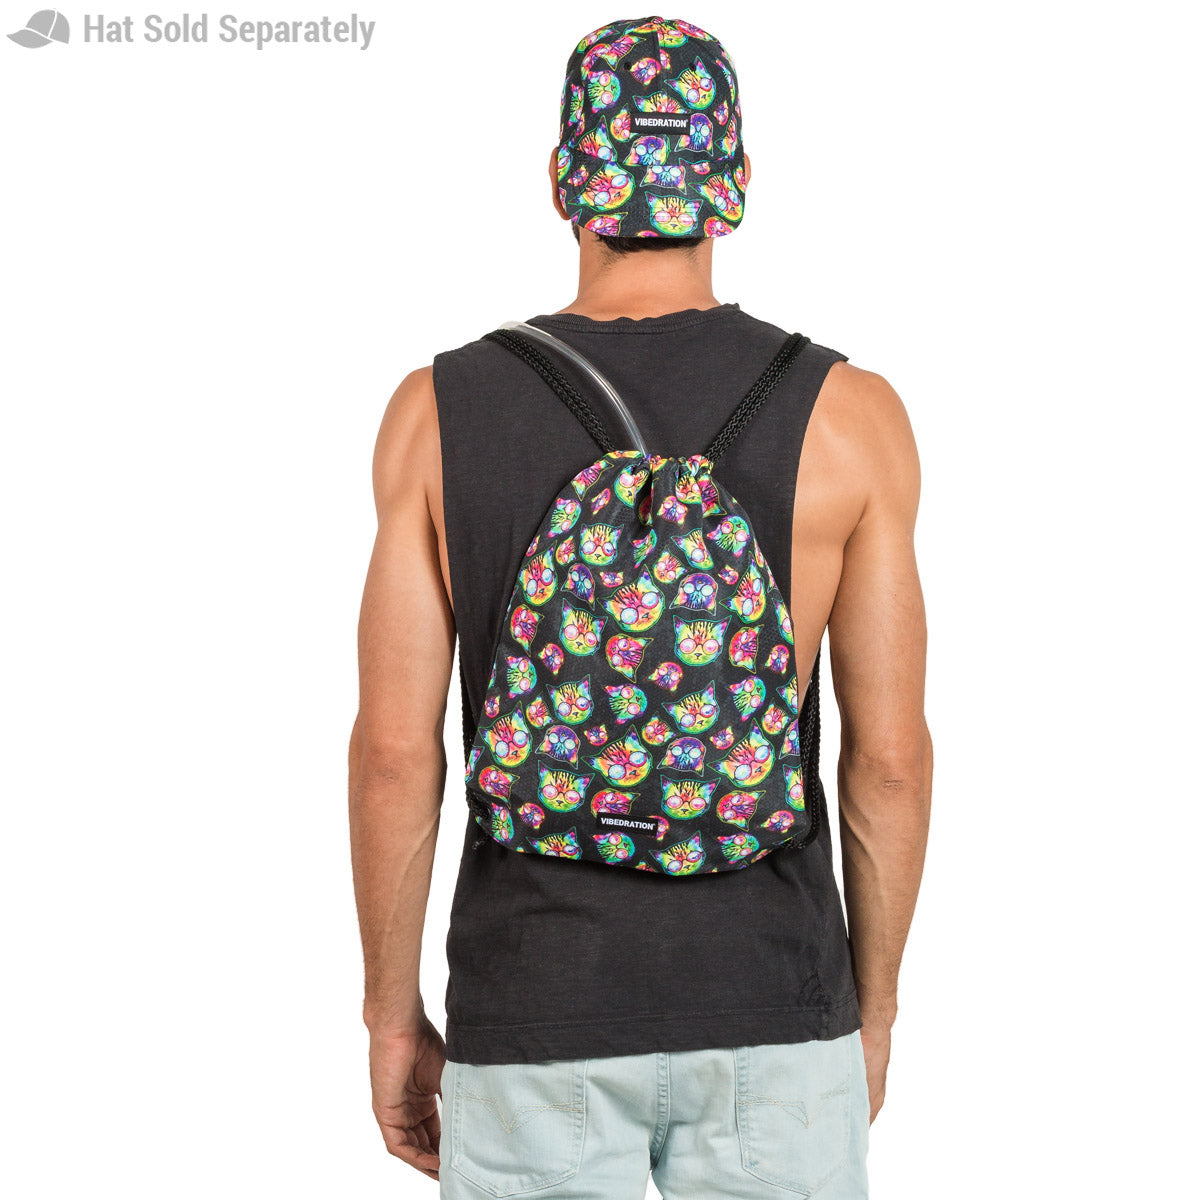 Printed Drawstring Bag with two liter Bladder